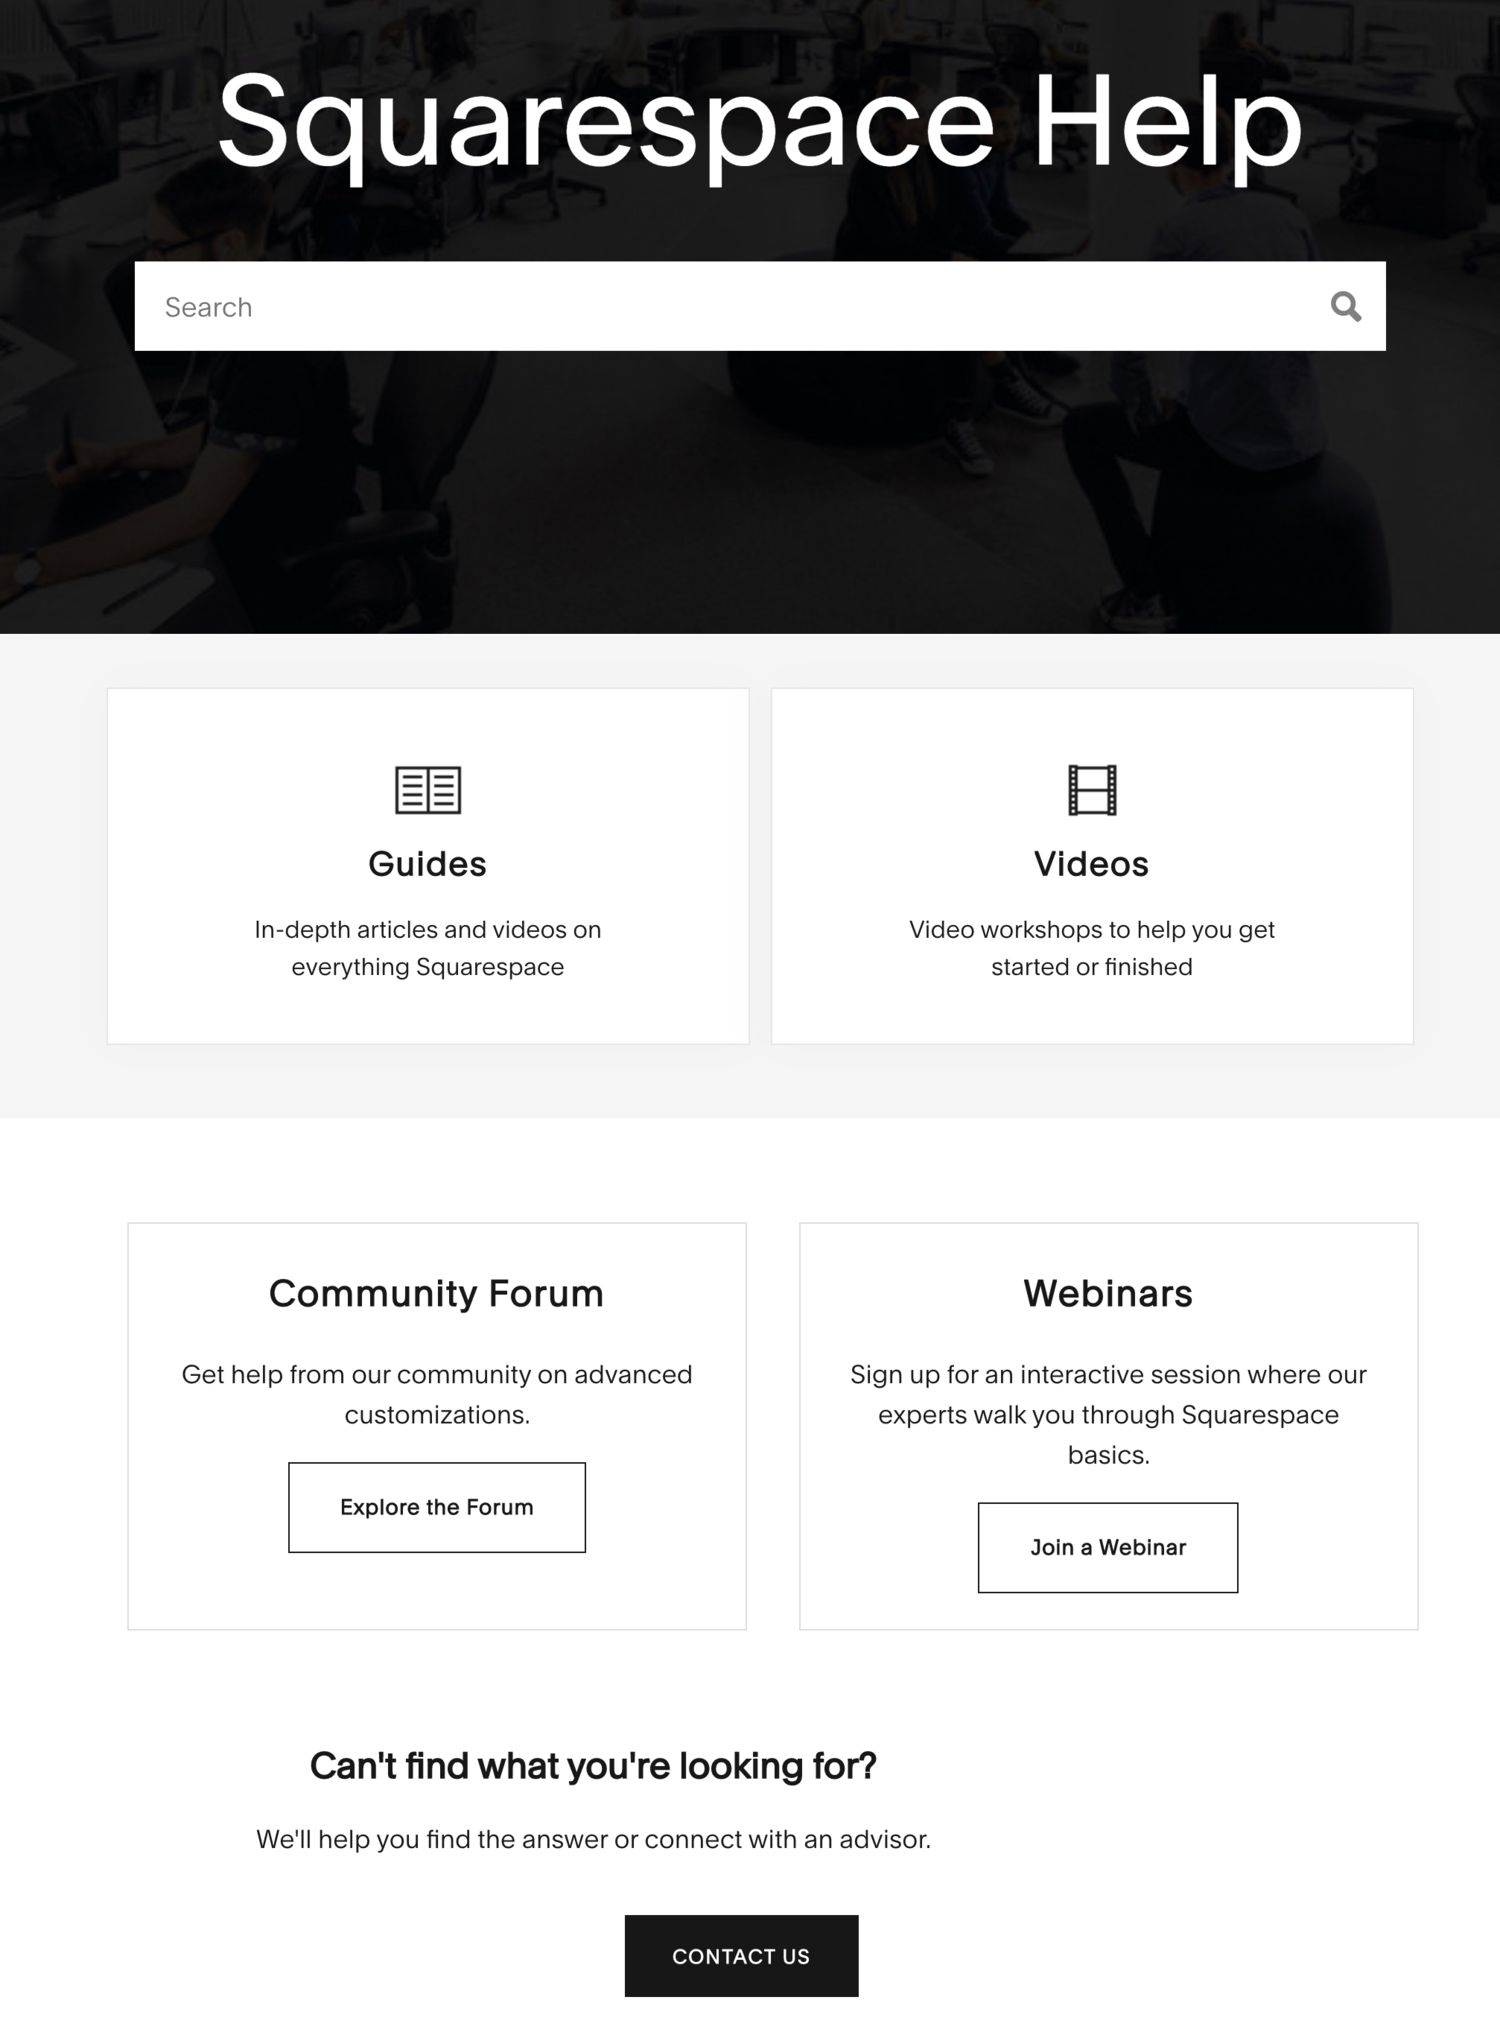 squarespace help center self-service